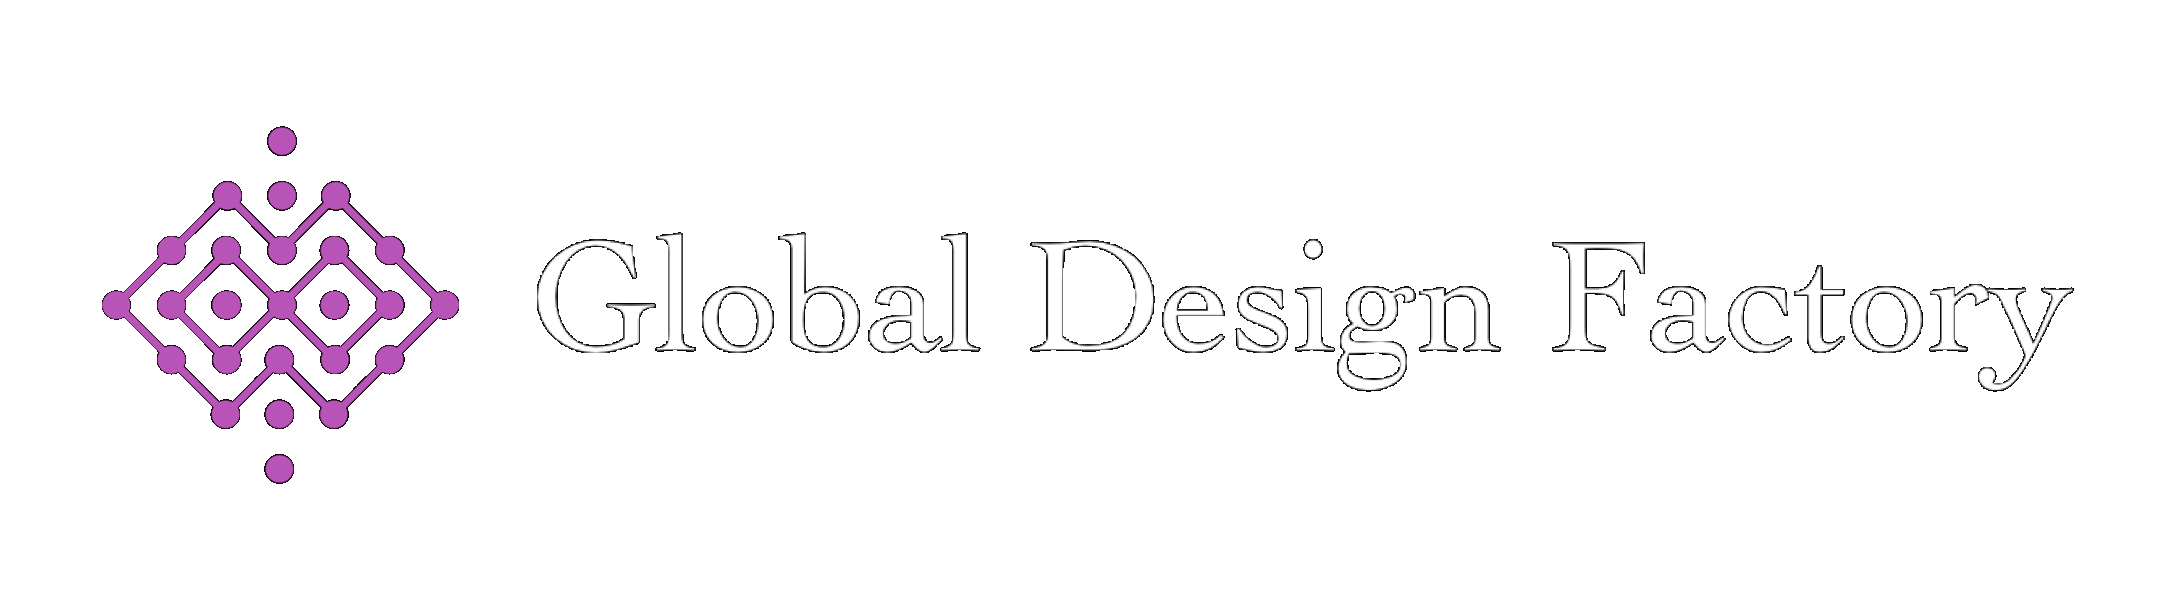 Global Design Factory